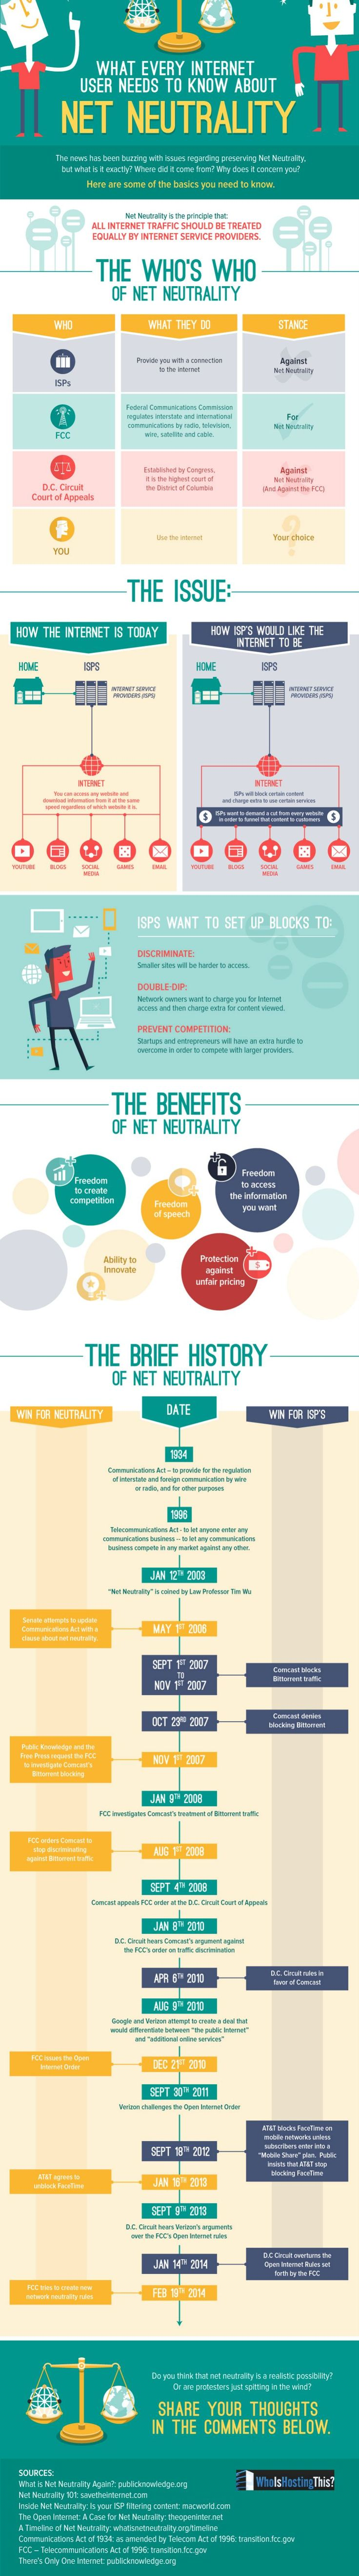 What Every #SocialMedia User Needs to Know about Net Neutrality - #infographic #internet